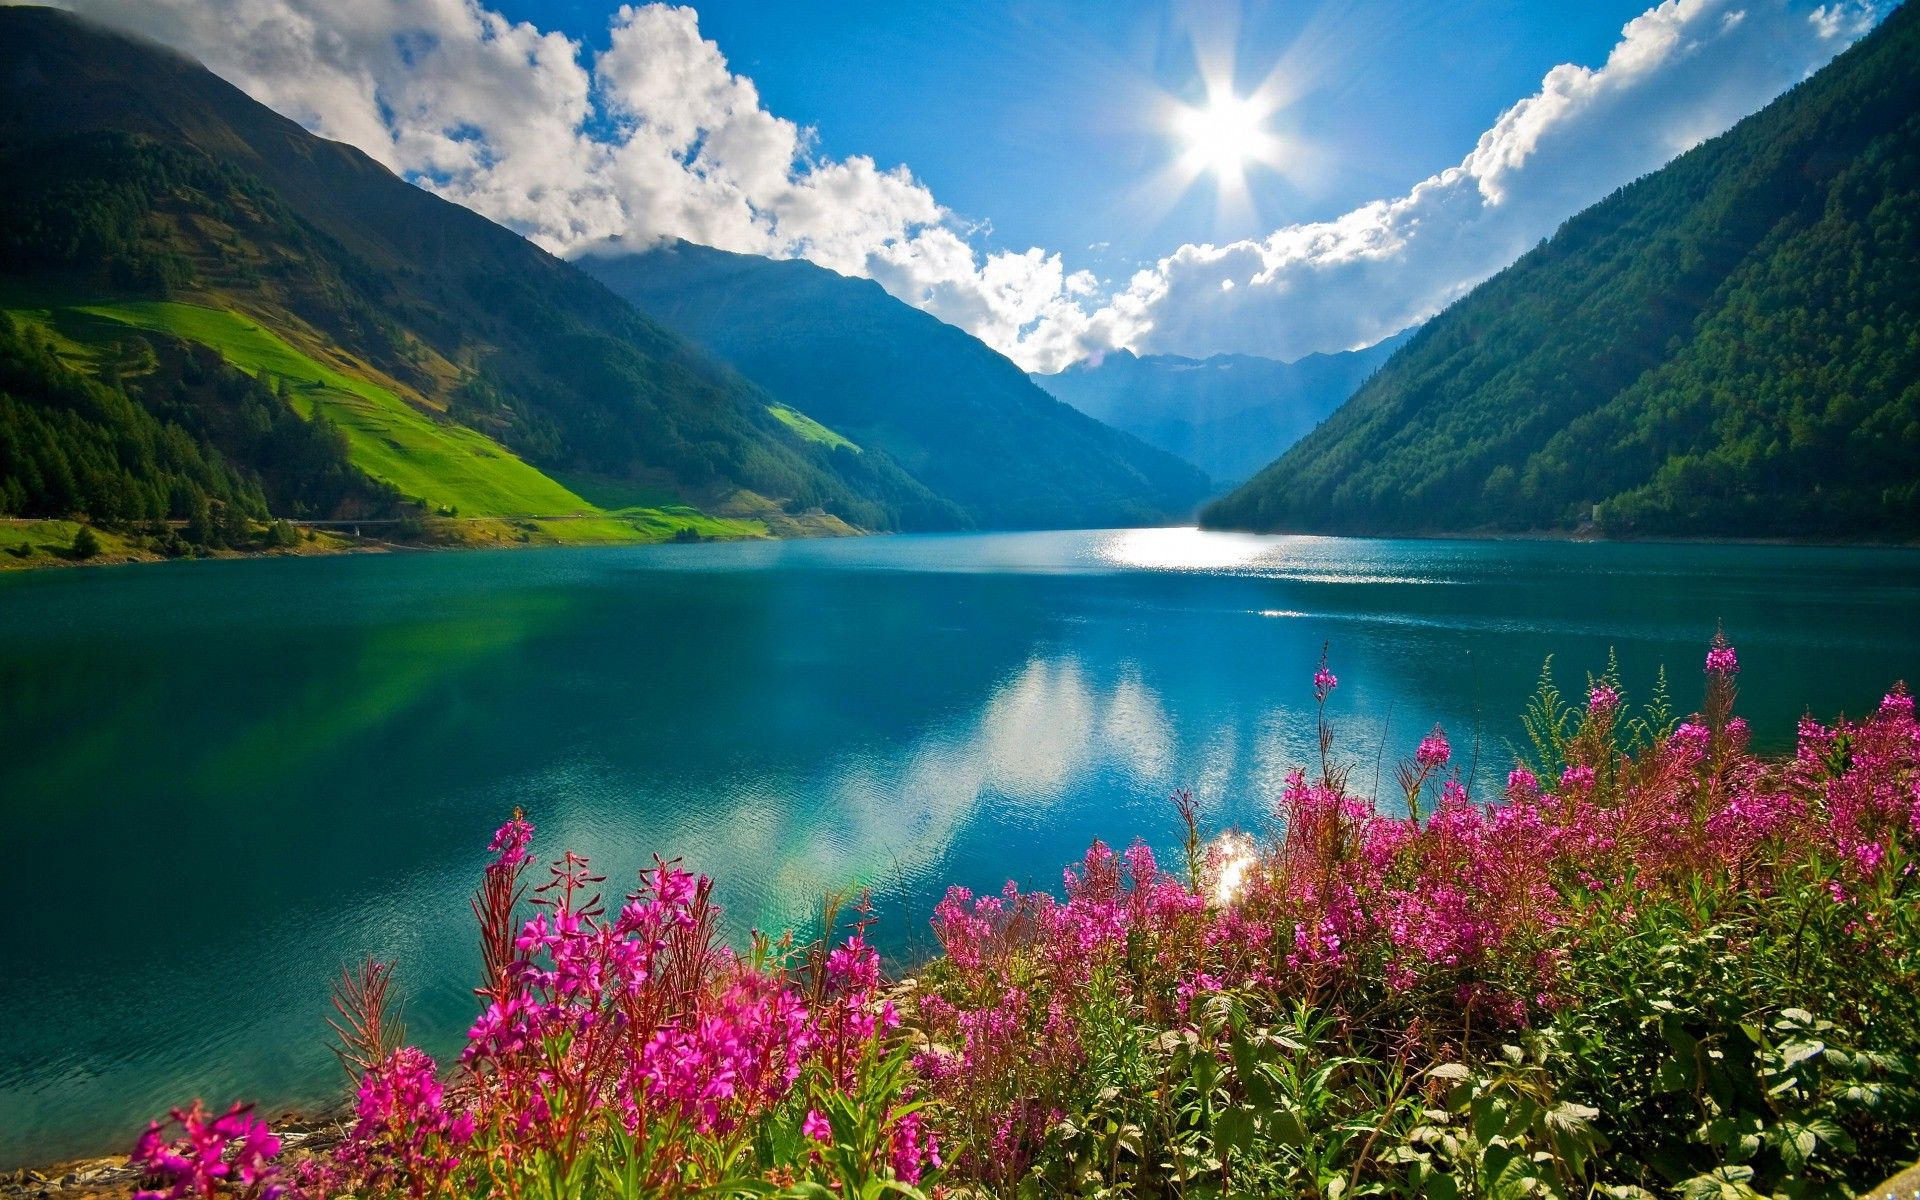 Nature Landscape Mountain River Sun Clouds Pink Flowers Austria Wallpapers Hd Desktop And Mobile Backgrounds Nature Wallpaper Sunrise Landscape Cool Pictures